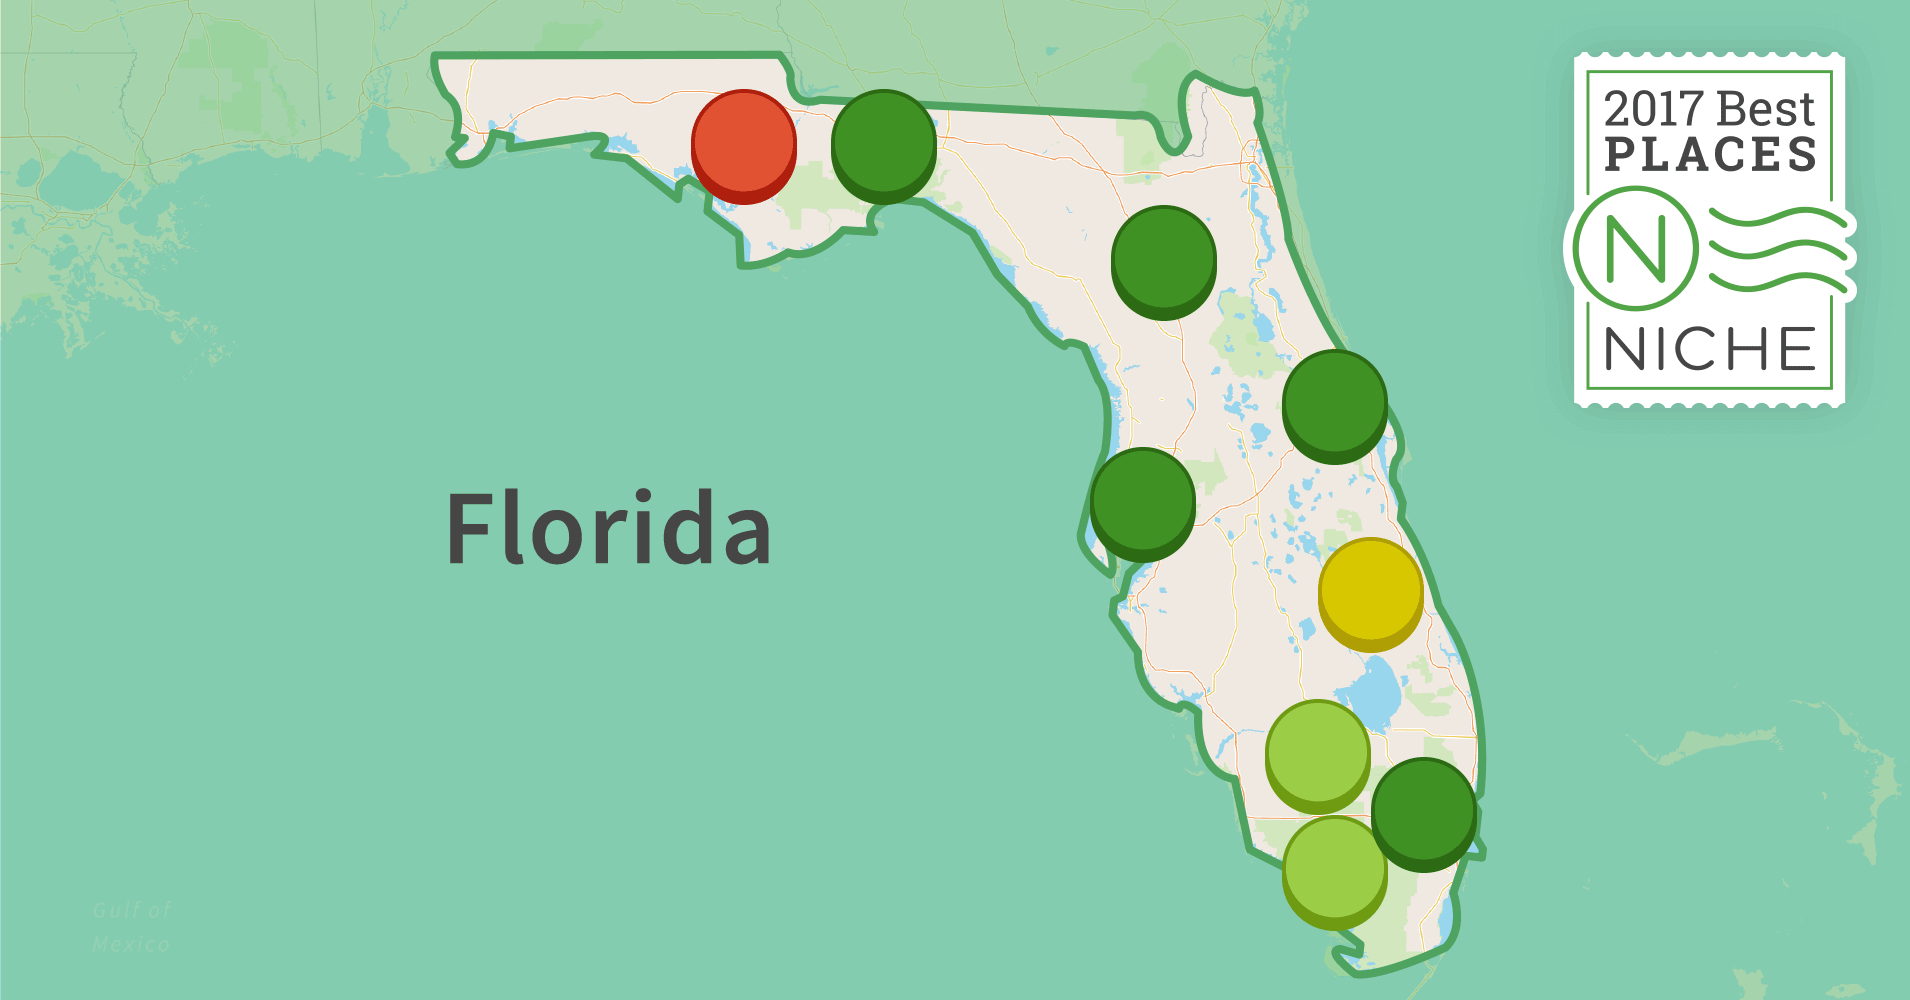 2017 best places to live in florida niche